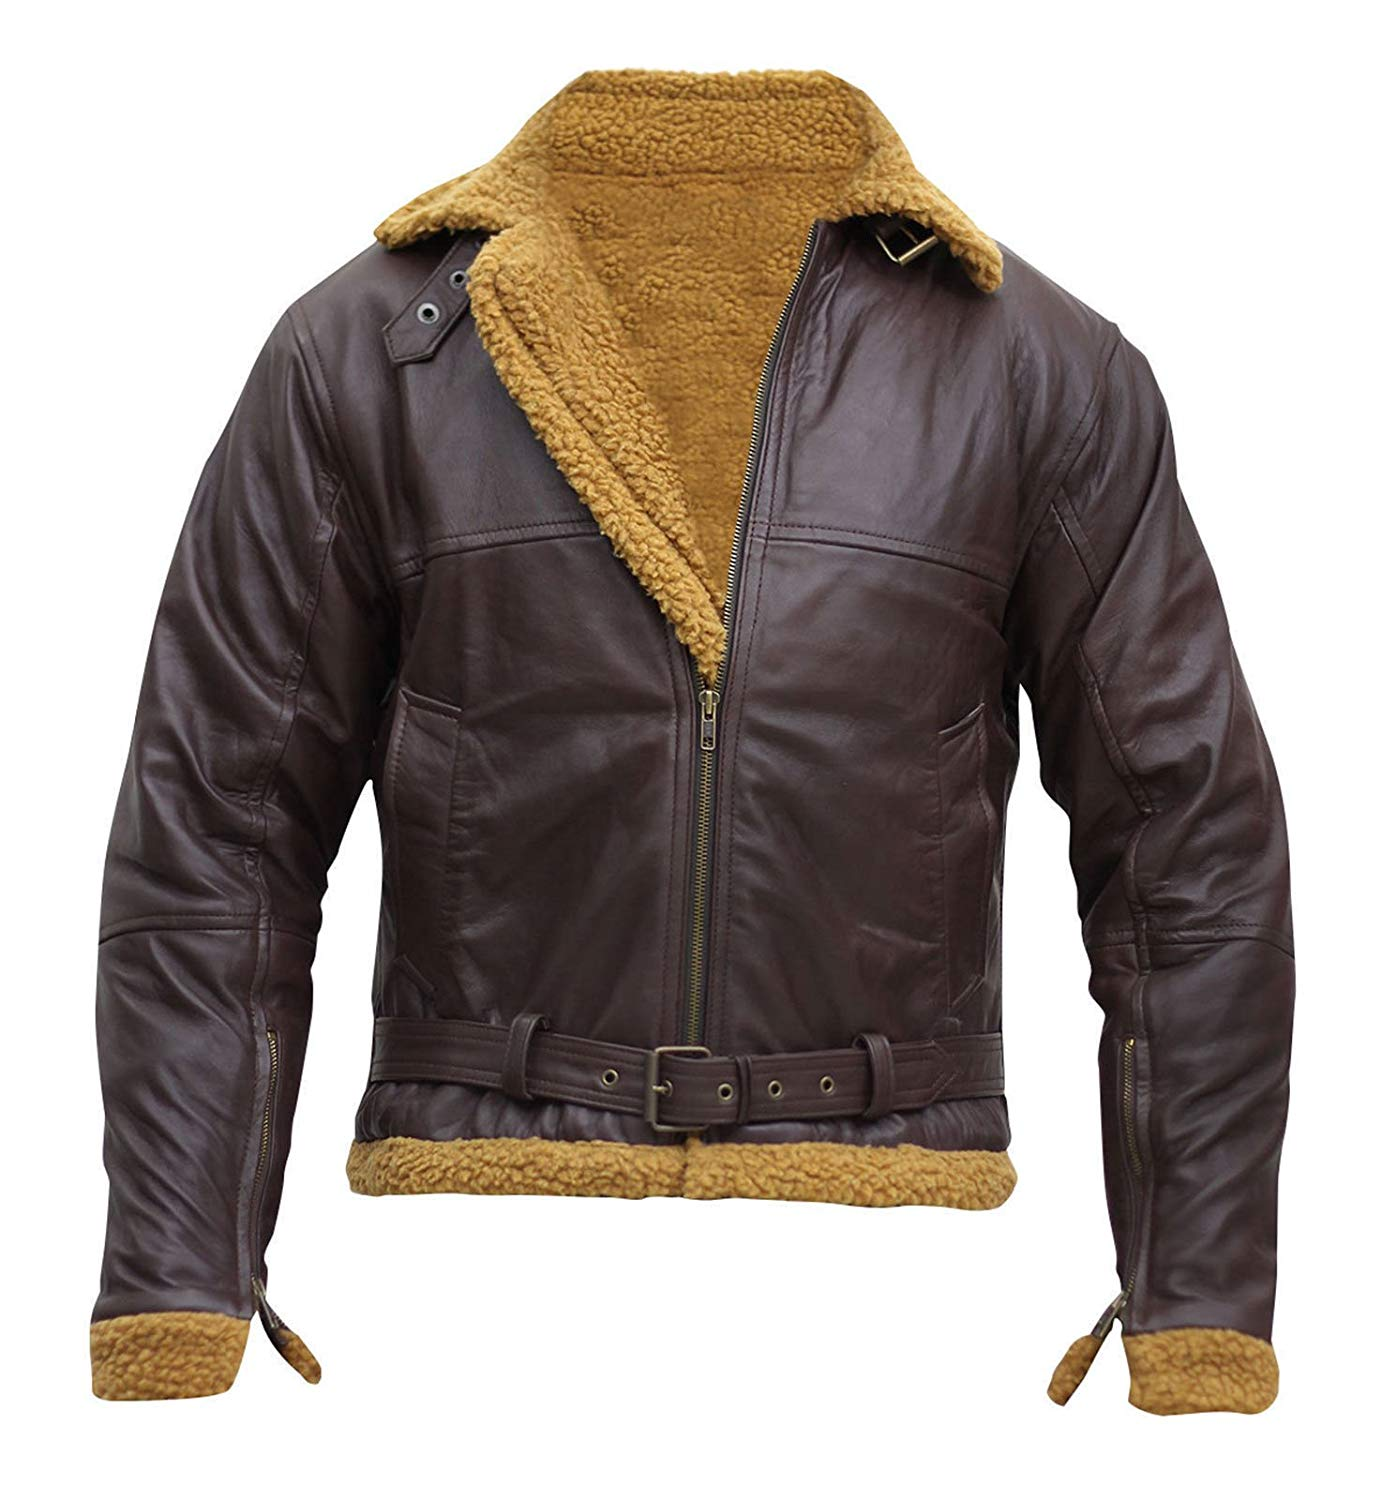 d8e4d6a4494b3 Get Quotations · NM Fashions Men s Aviator RAF B3 Ginger Shearling Sheepskin  Leather Bomber Flying Jacket